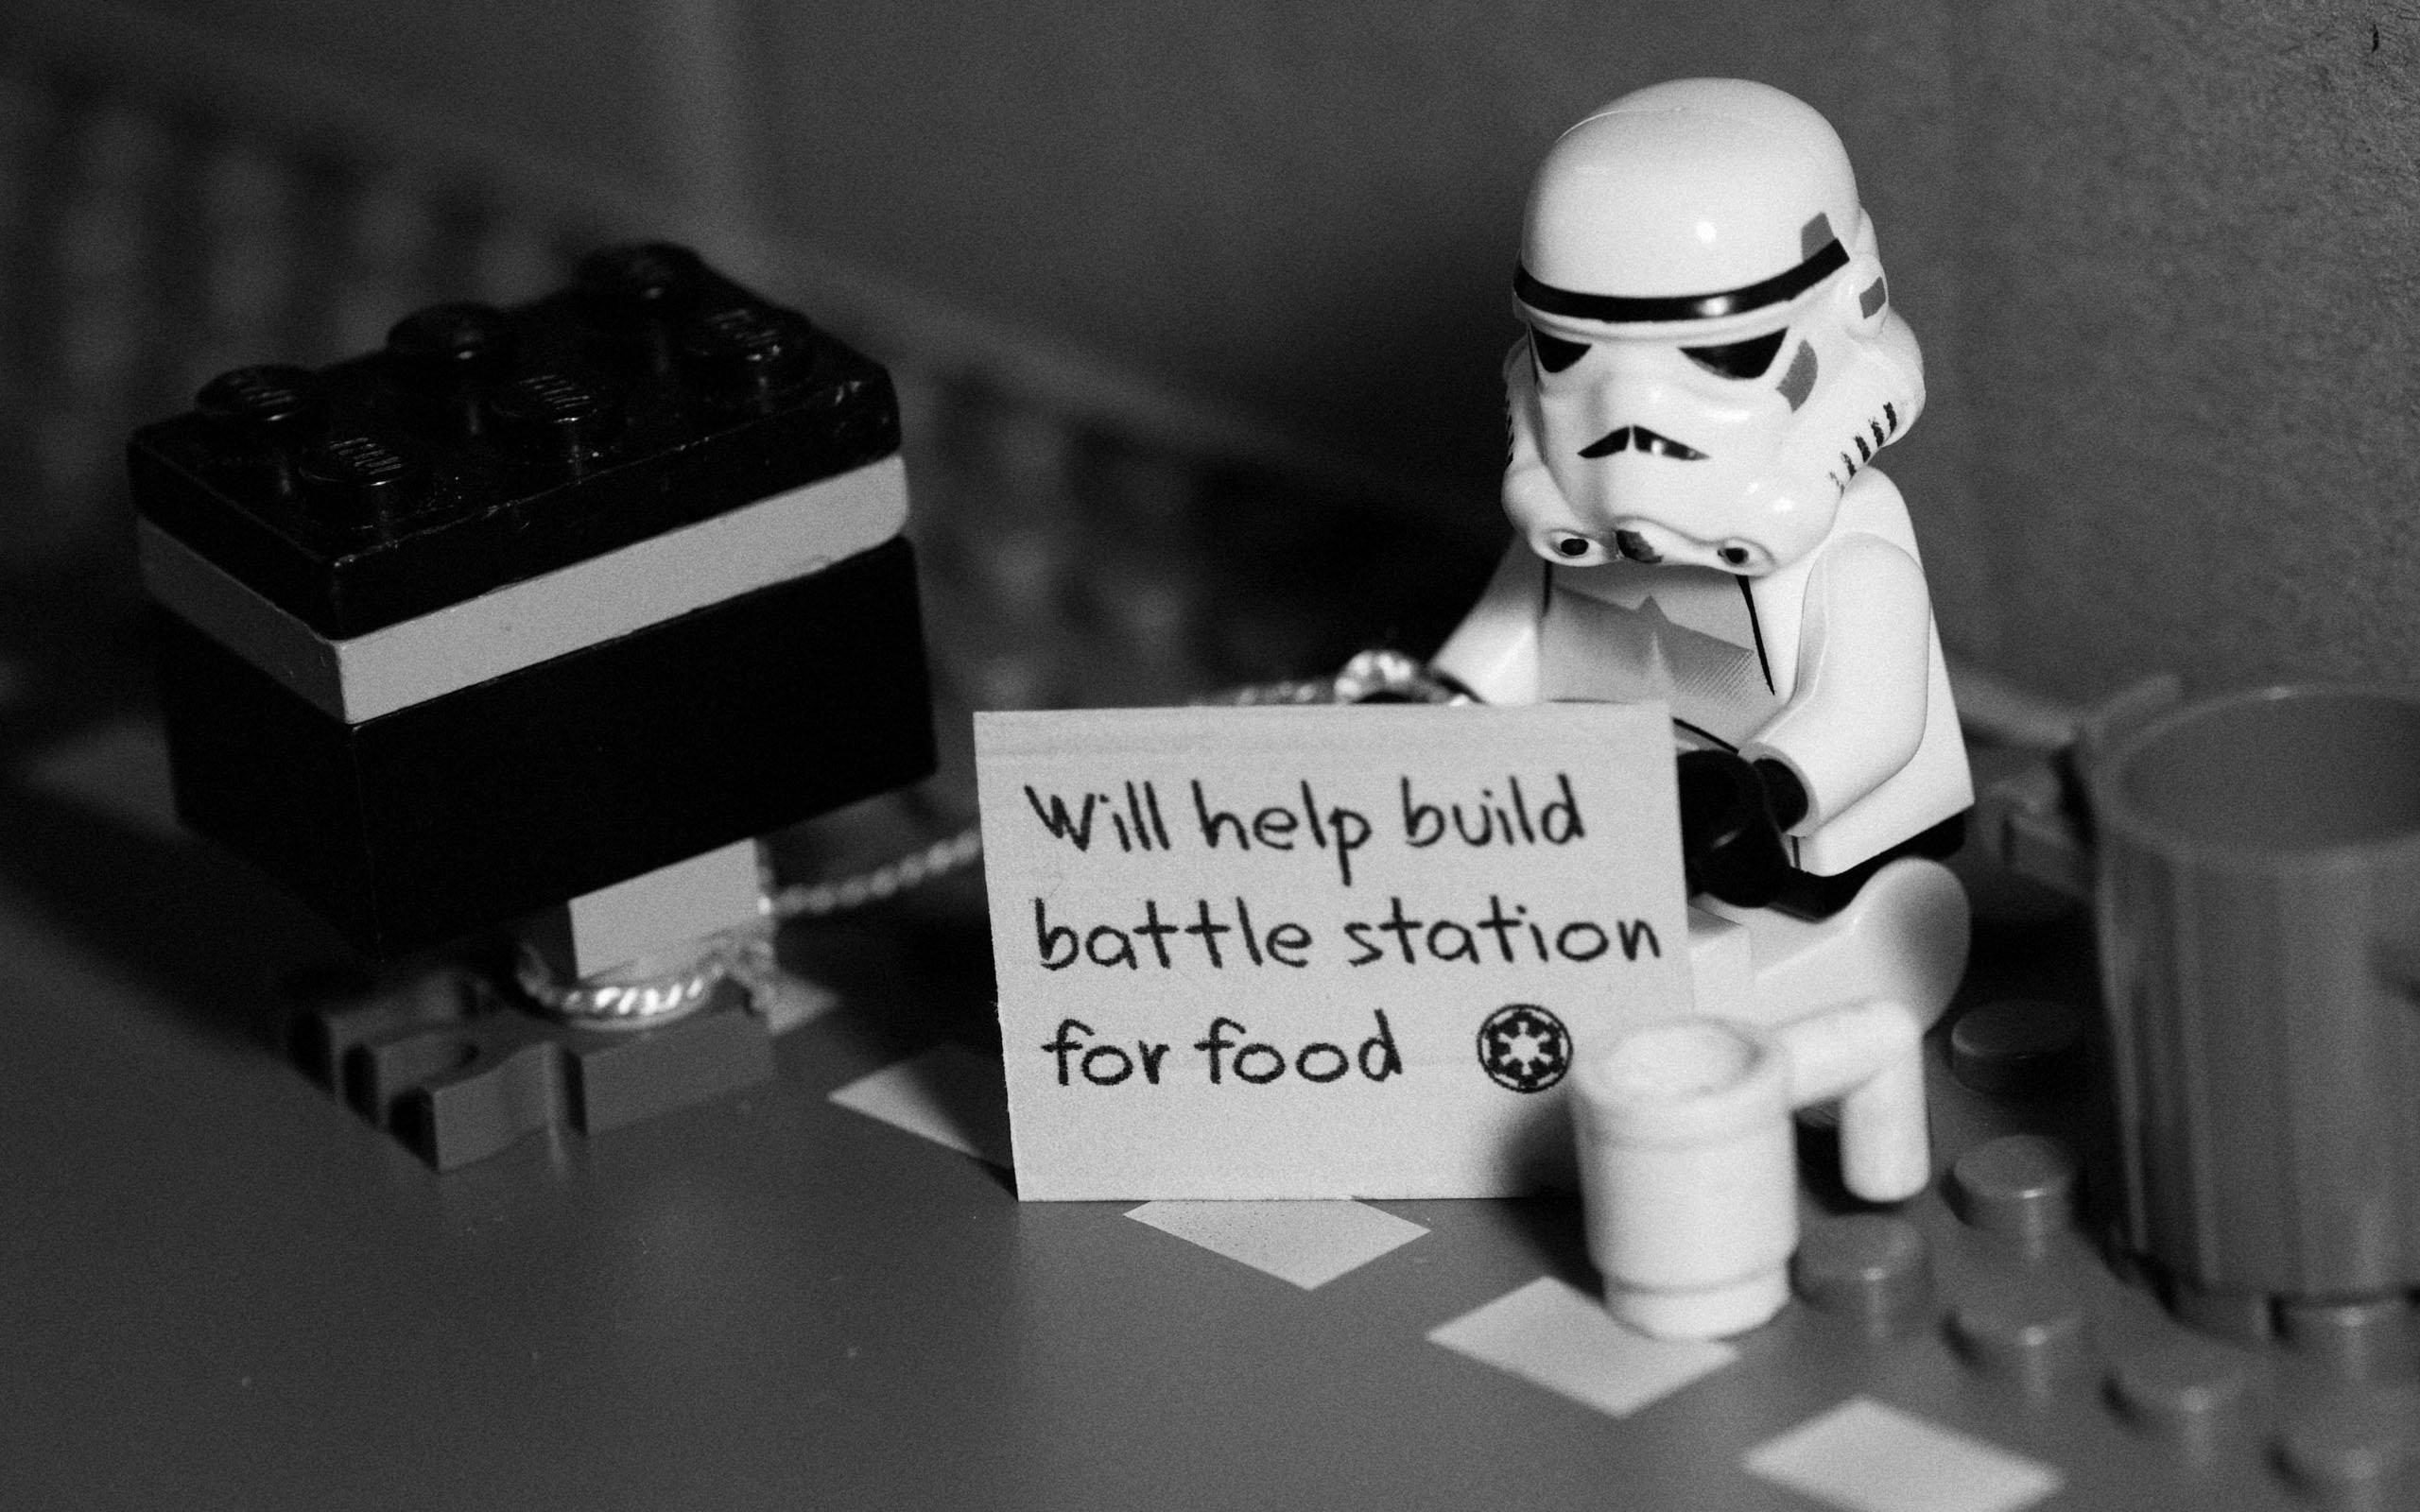 Funny Grayscale Legos Monochrome Signs Star Wars Stormtroopers